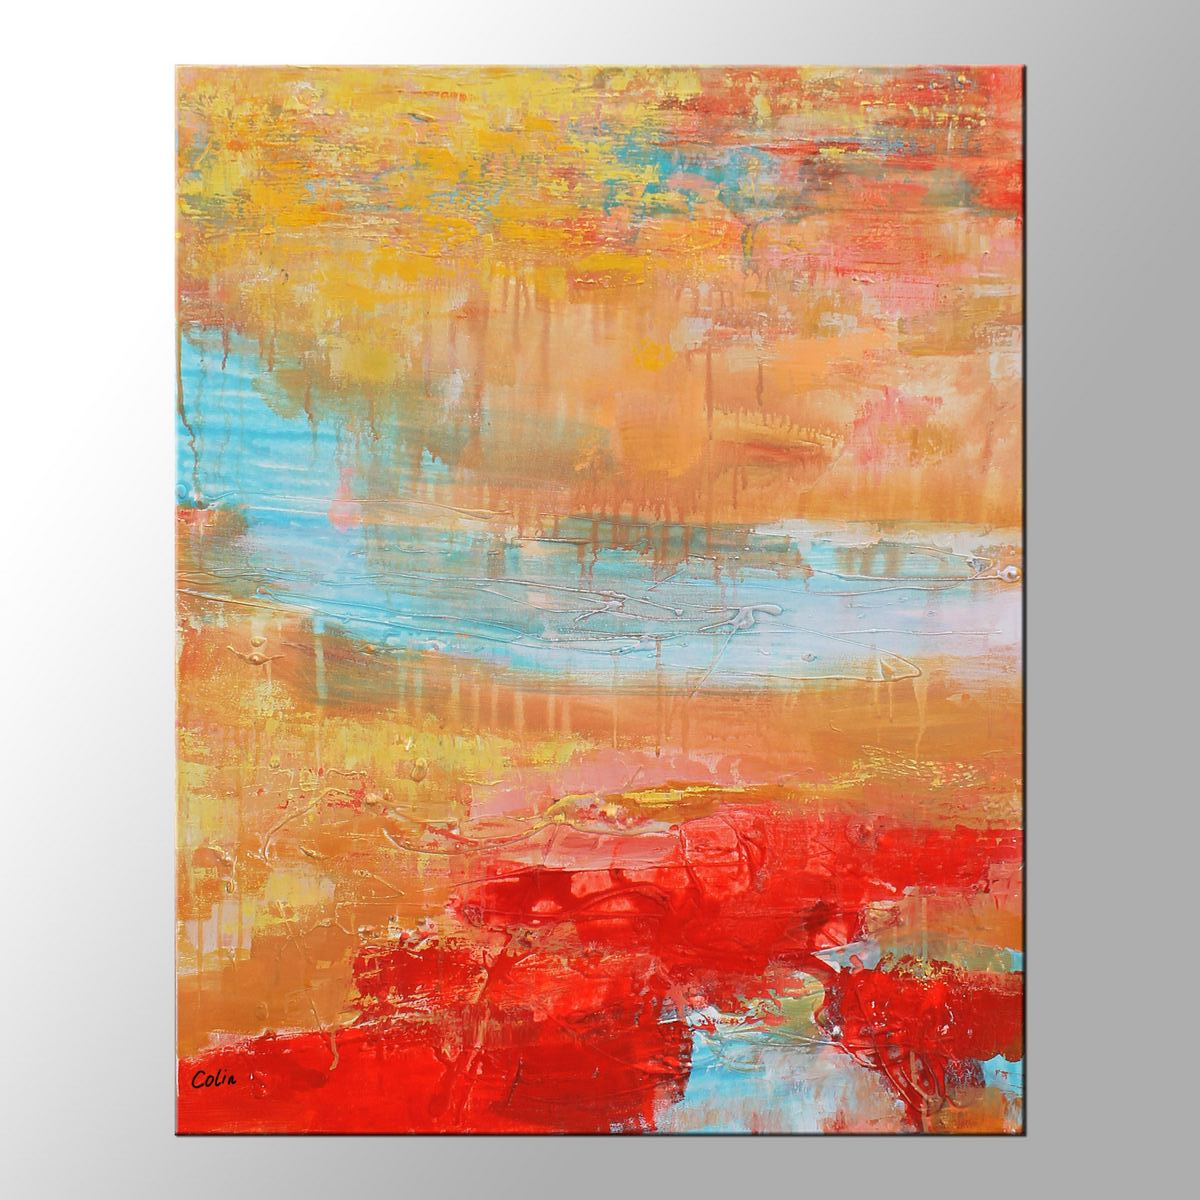 Contemporary Art, Abstract Art, Large Art, Abstract Painting, Original Painting